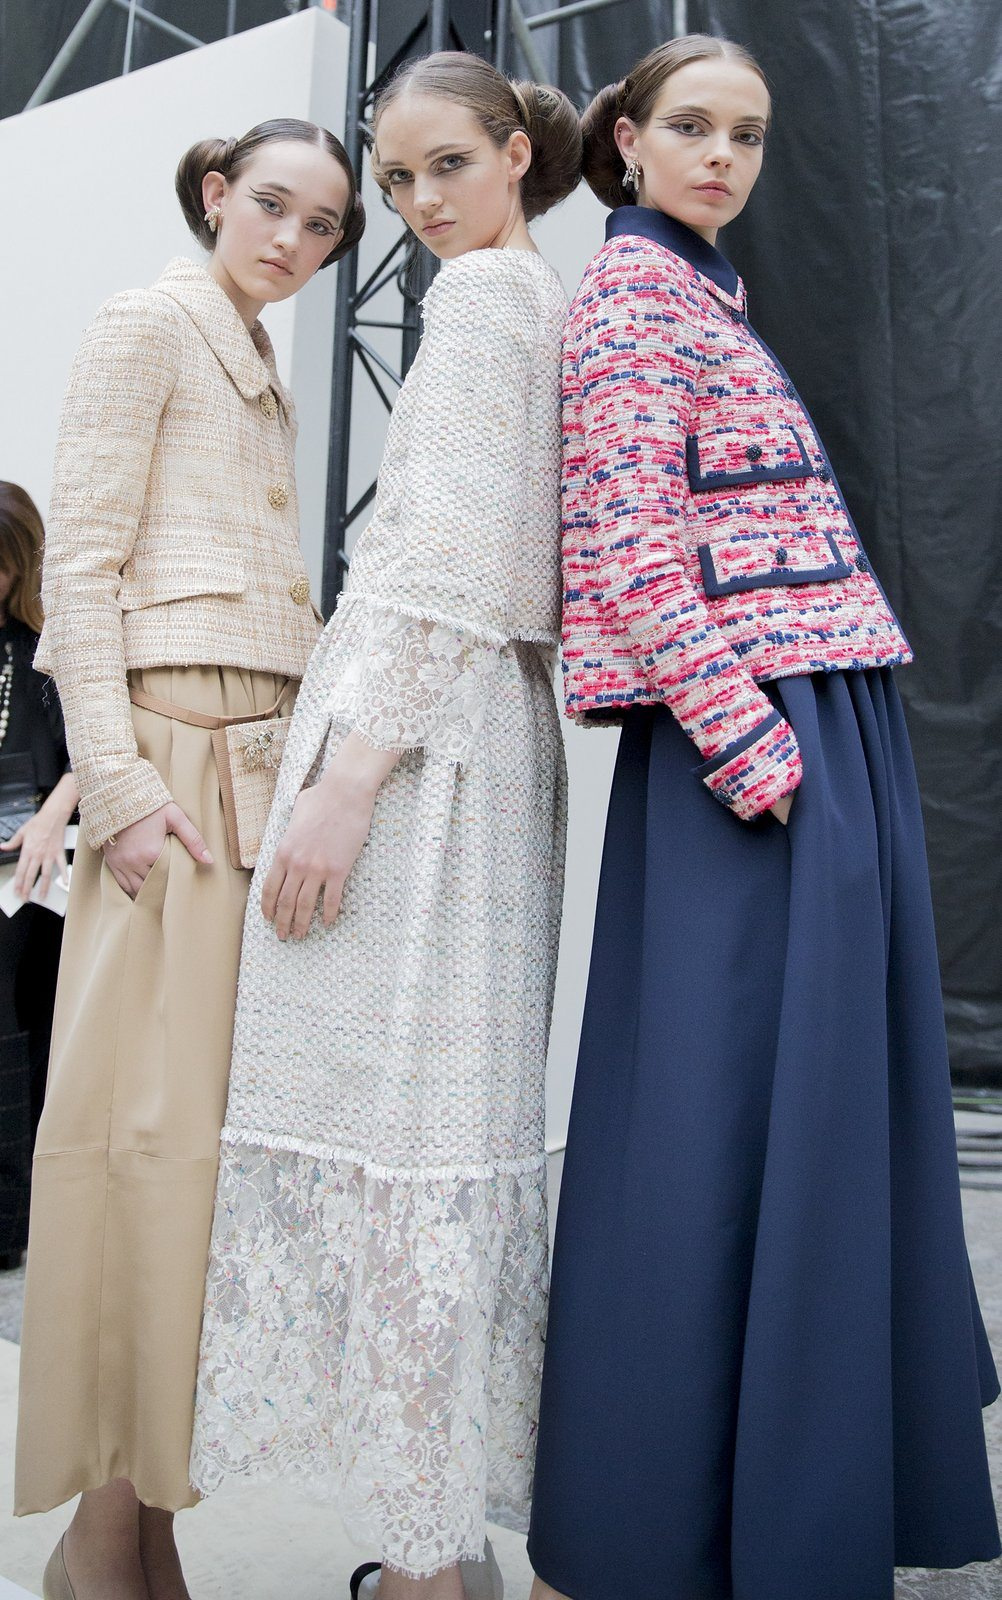 chanel-spring-2016-couture-backstage-kevin-tachman-04